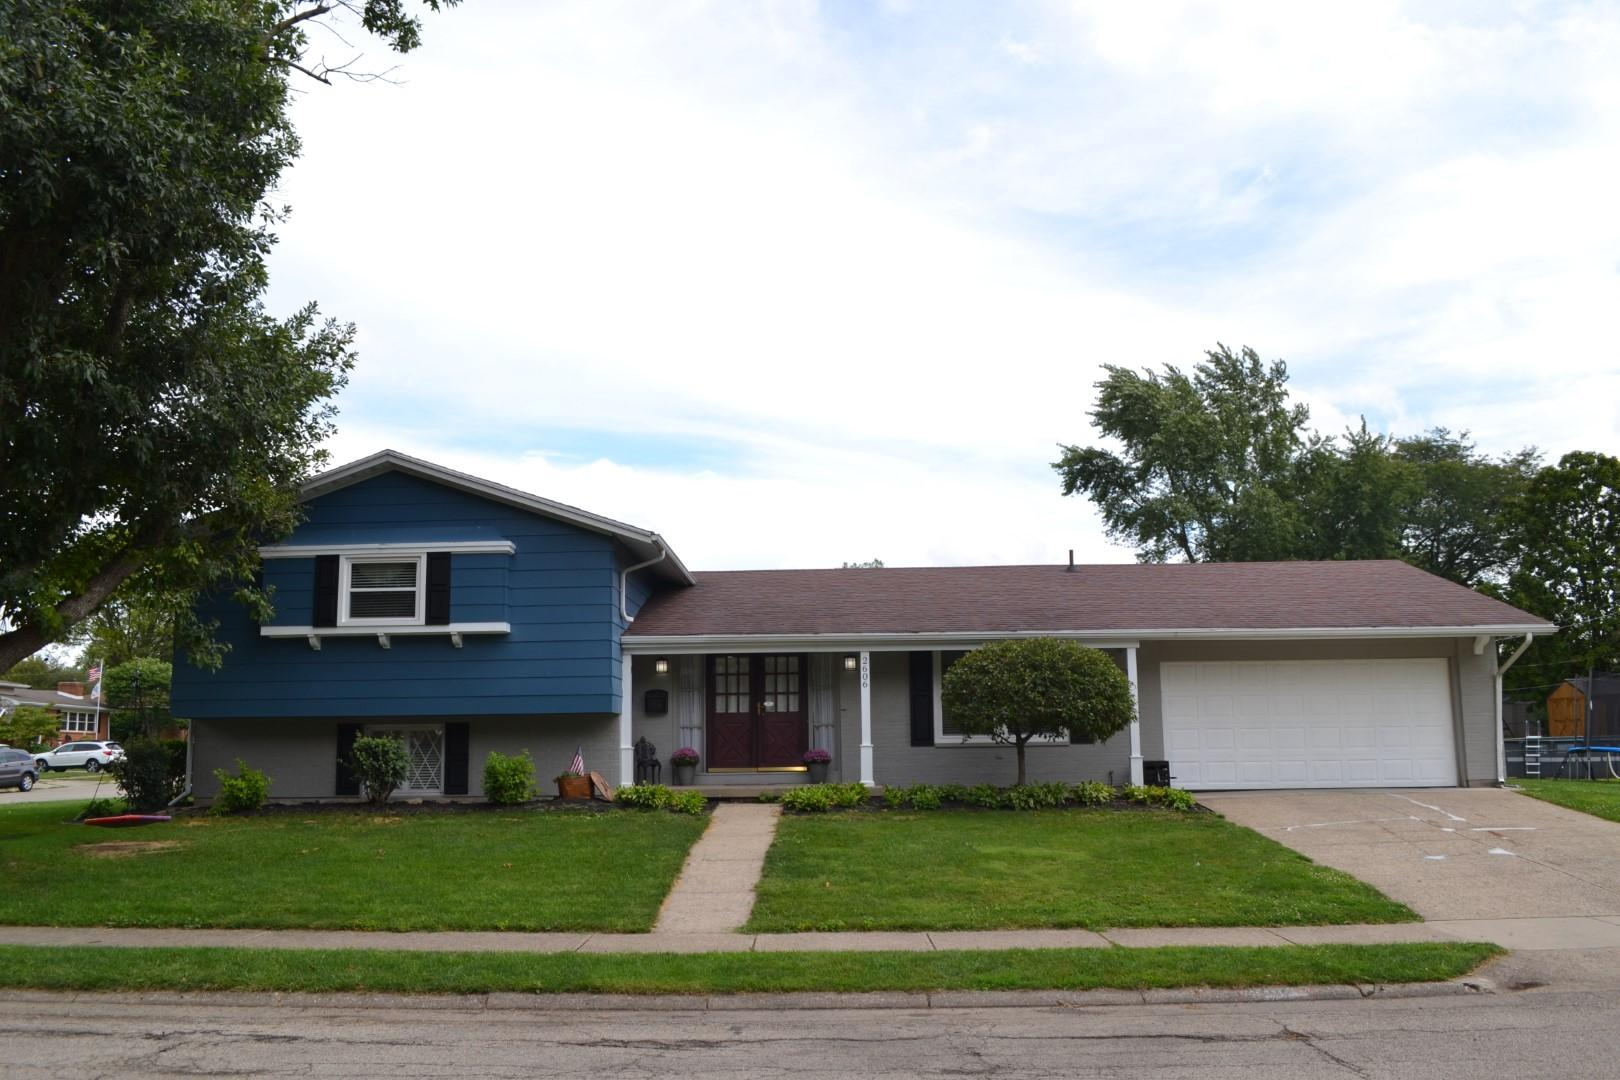 Photo 1 for 2606 Carousel Dr Springfield, OH 45503